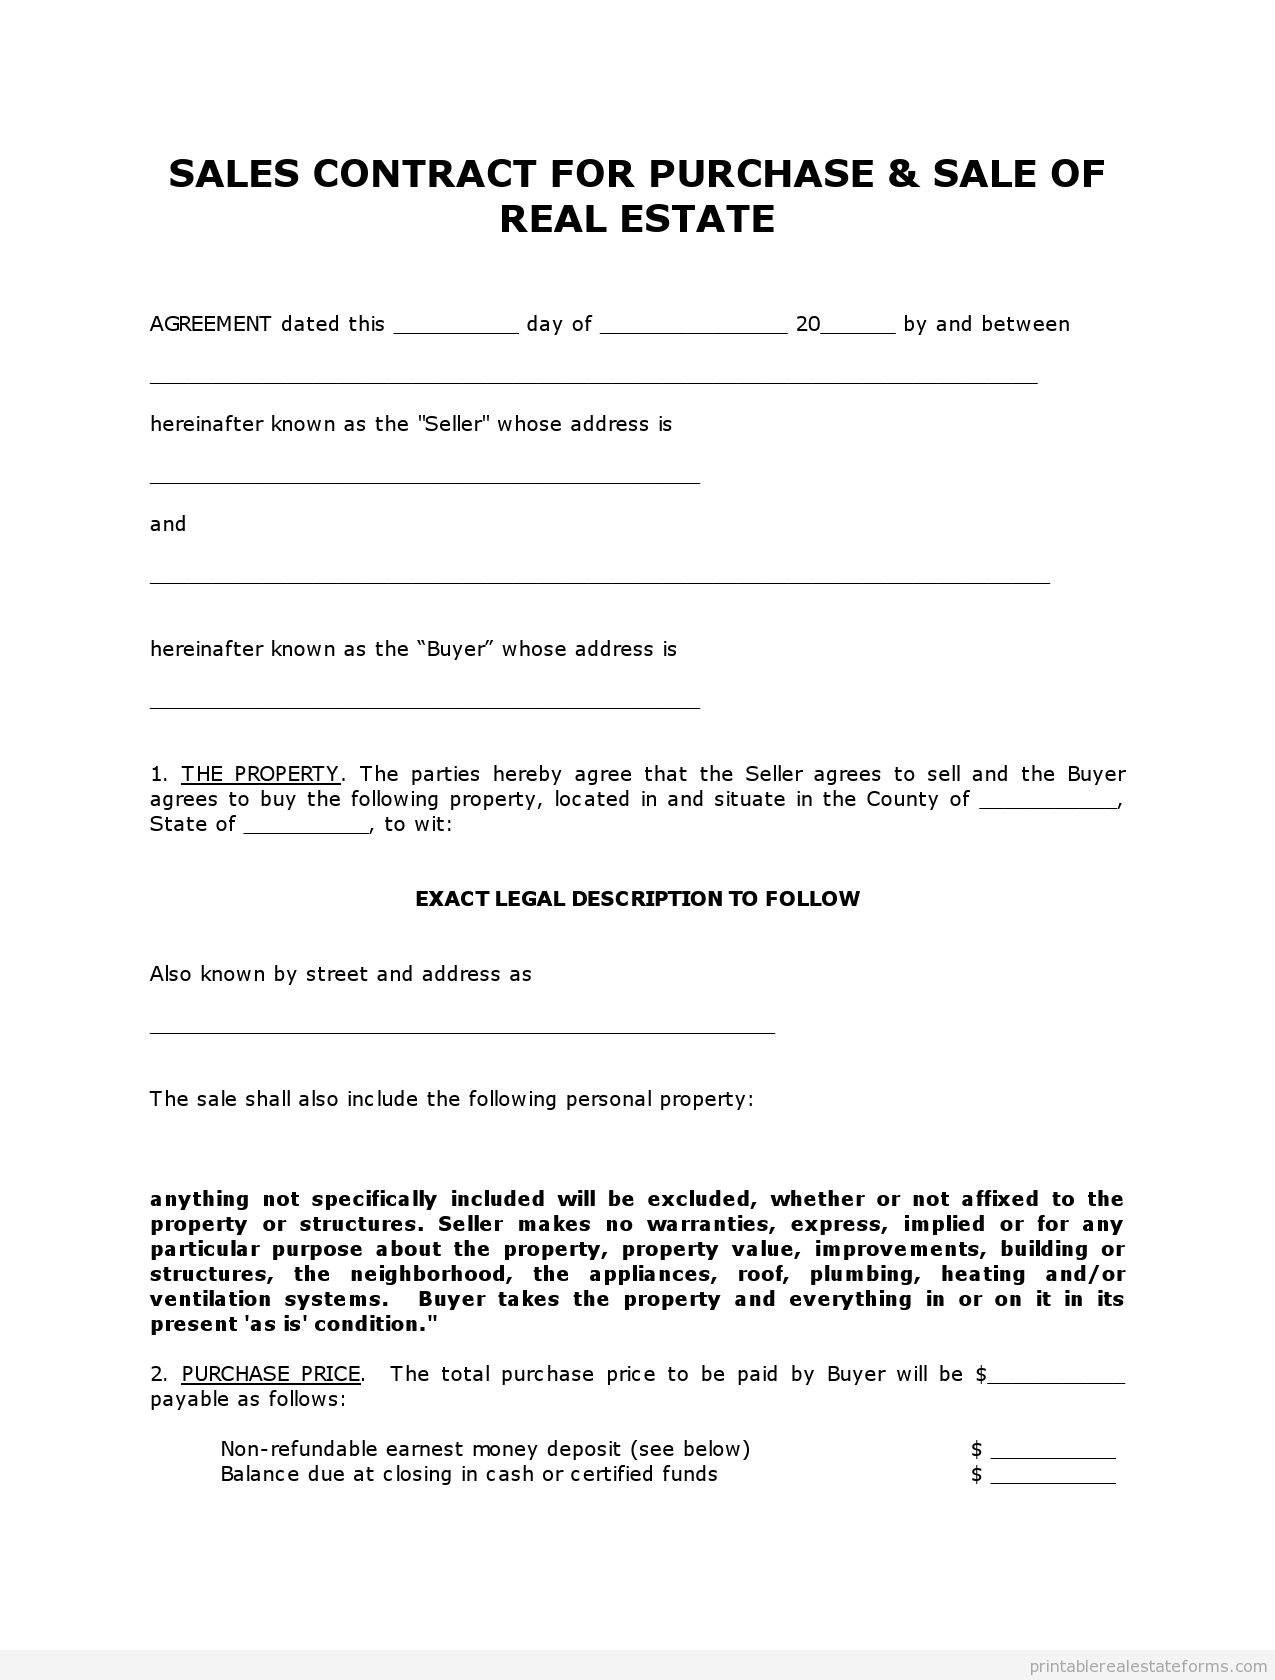 Free Printable Land Contract Forms (Word File) - Free Printable Real Estate Forms